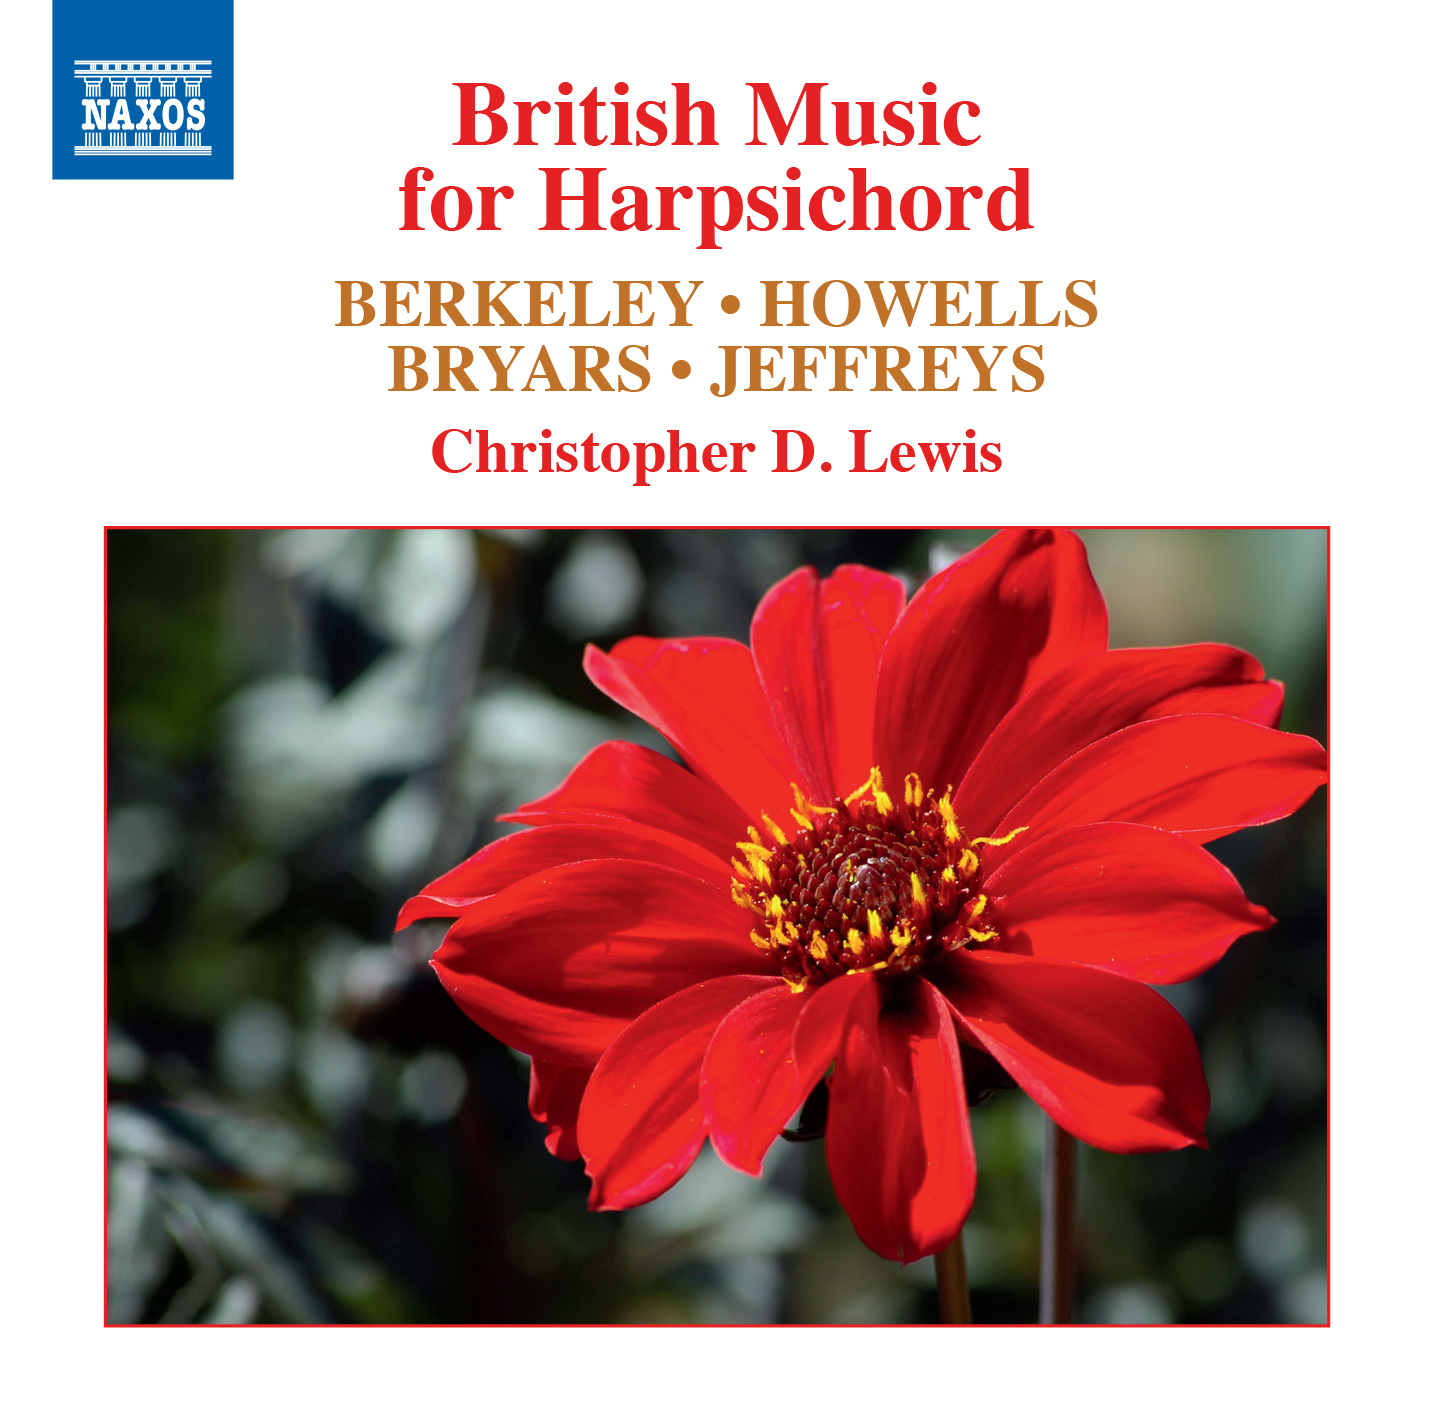 IN REVIEW: Berkeley, Bryars, Howells, & Jeffreys - BRITISH MUSIC FOR HARPSICHORD (NAXOS 8.573668)